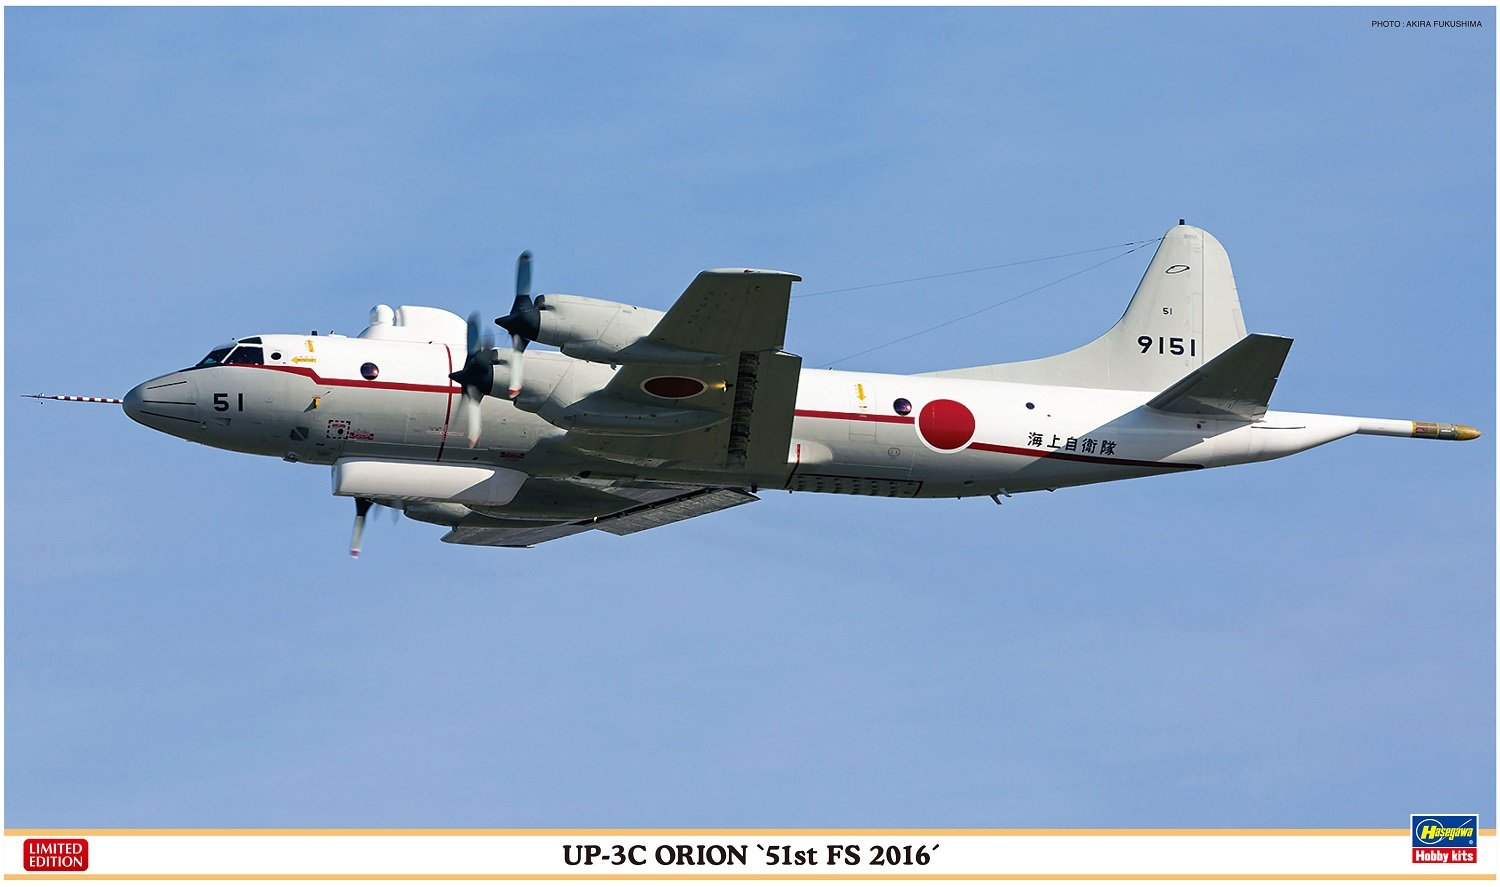 Hasegawa 002235 1/72 UP-3C Orion 51st FS2016